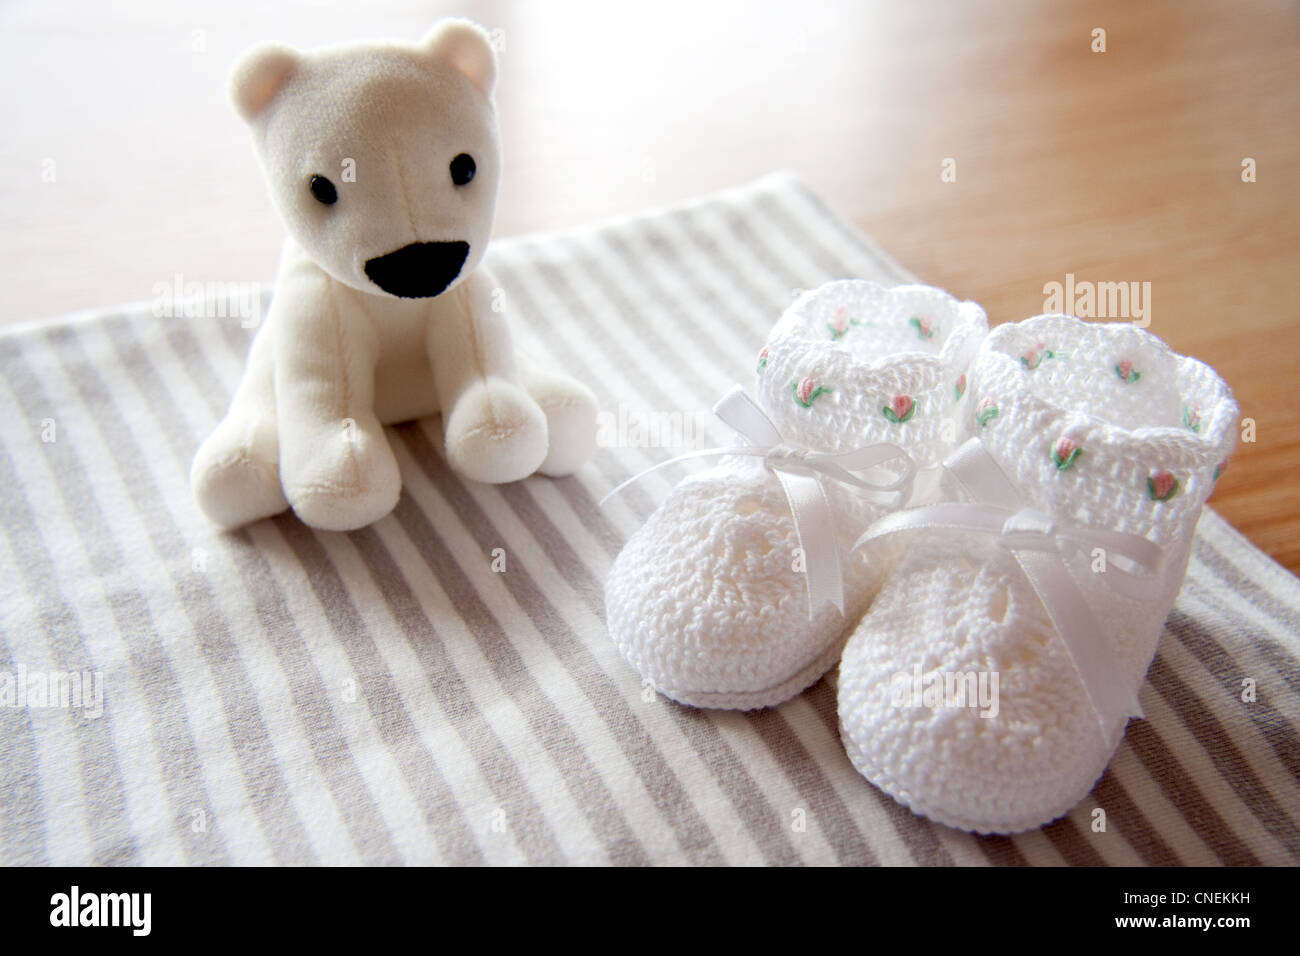 Baby's gifts - Stock Image